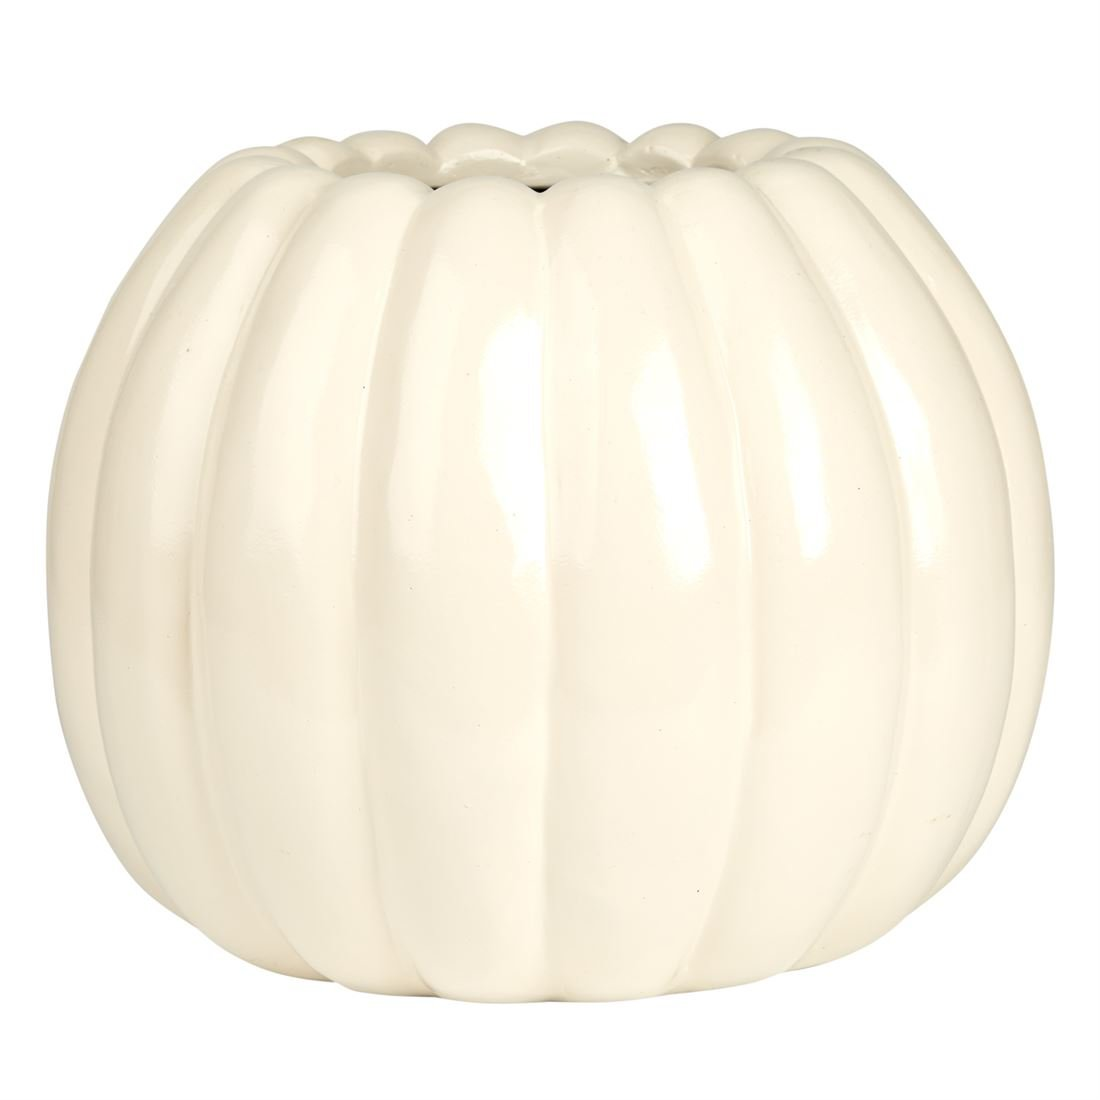 BrylaneHome Small Pumpkin Planter (Ivory,0) by BrylaneHome